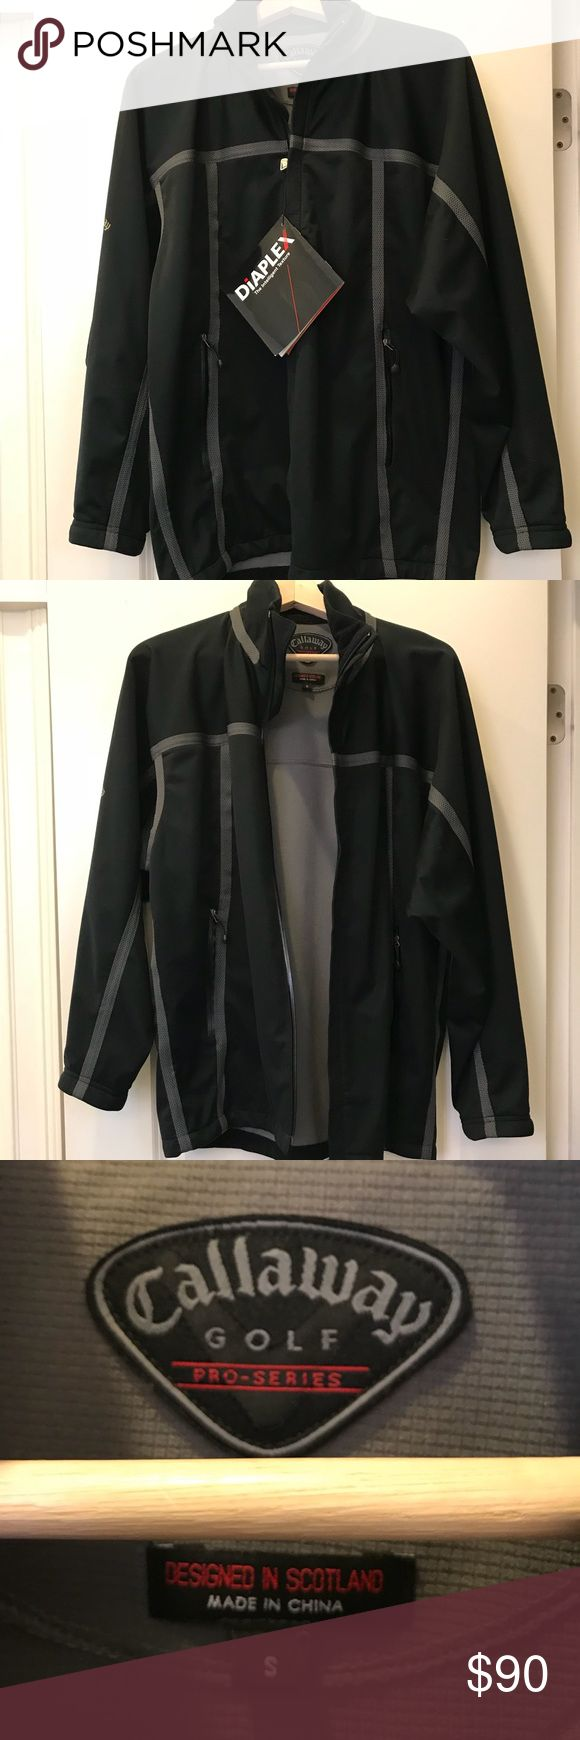 Men's NWT Callaway Golf Jacket Black NWT men's Callaway golf jacket.  Made of Diaplex —totally waterproof material. Great for golf but stylish enough to wear anytime. Callaway Jackets & Coats Performance Jackets